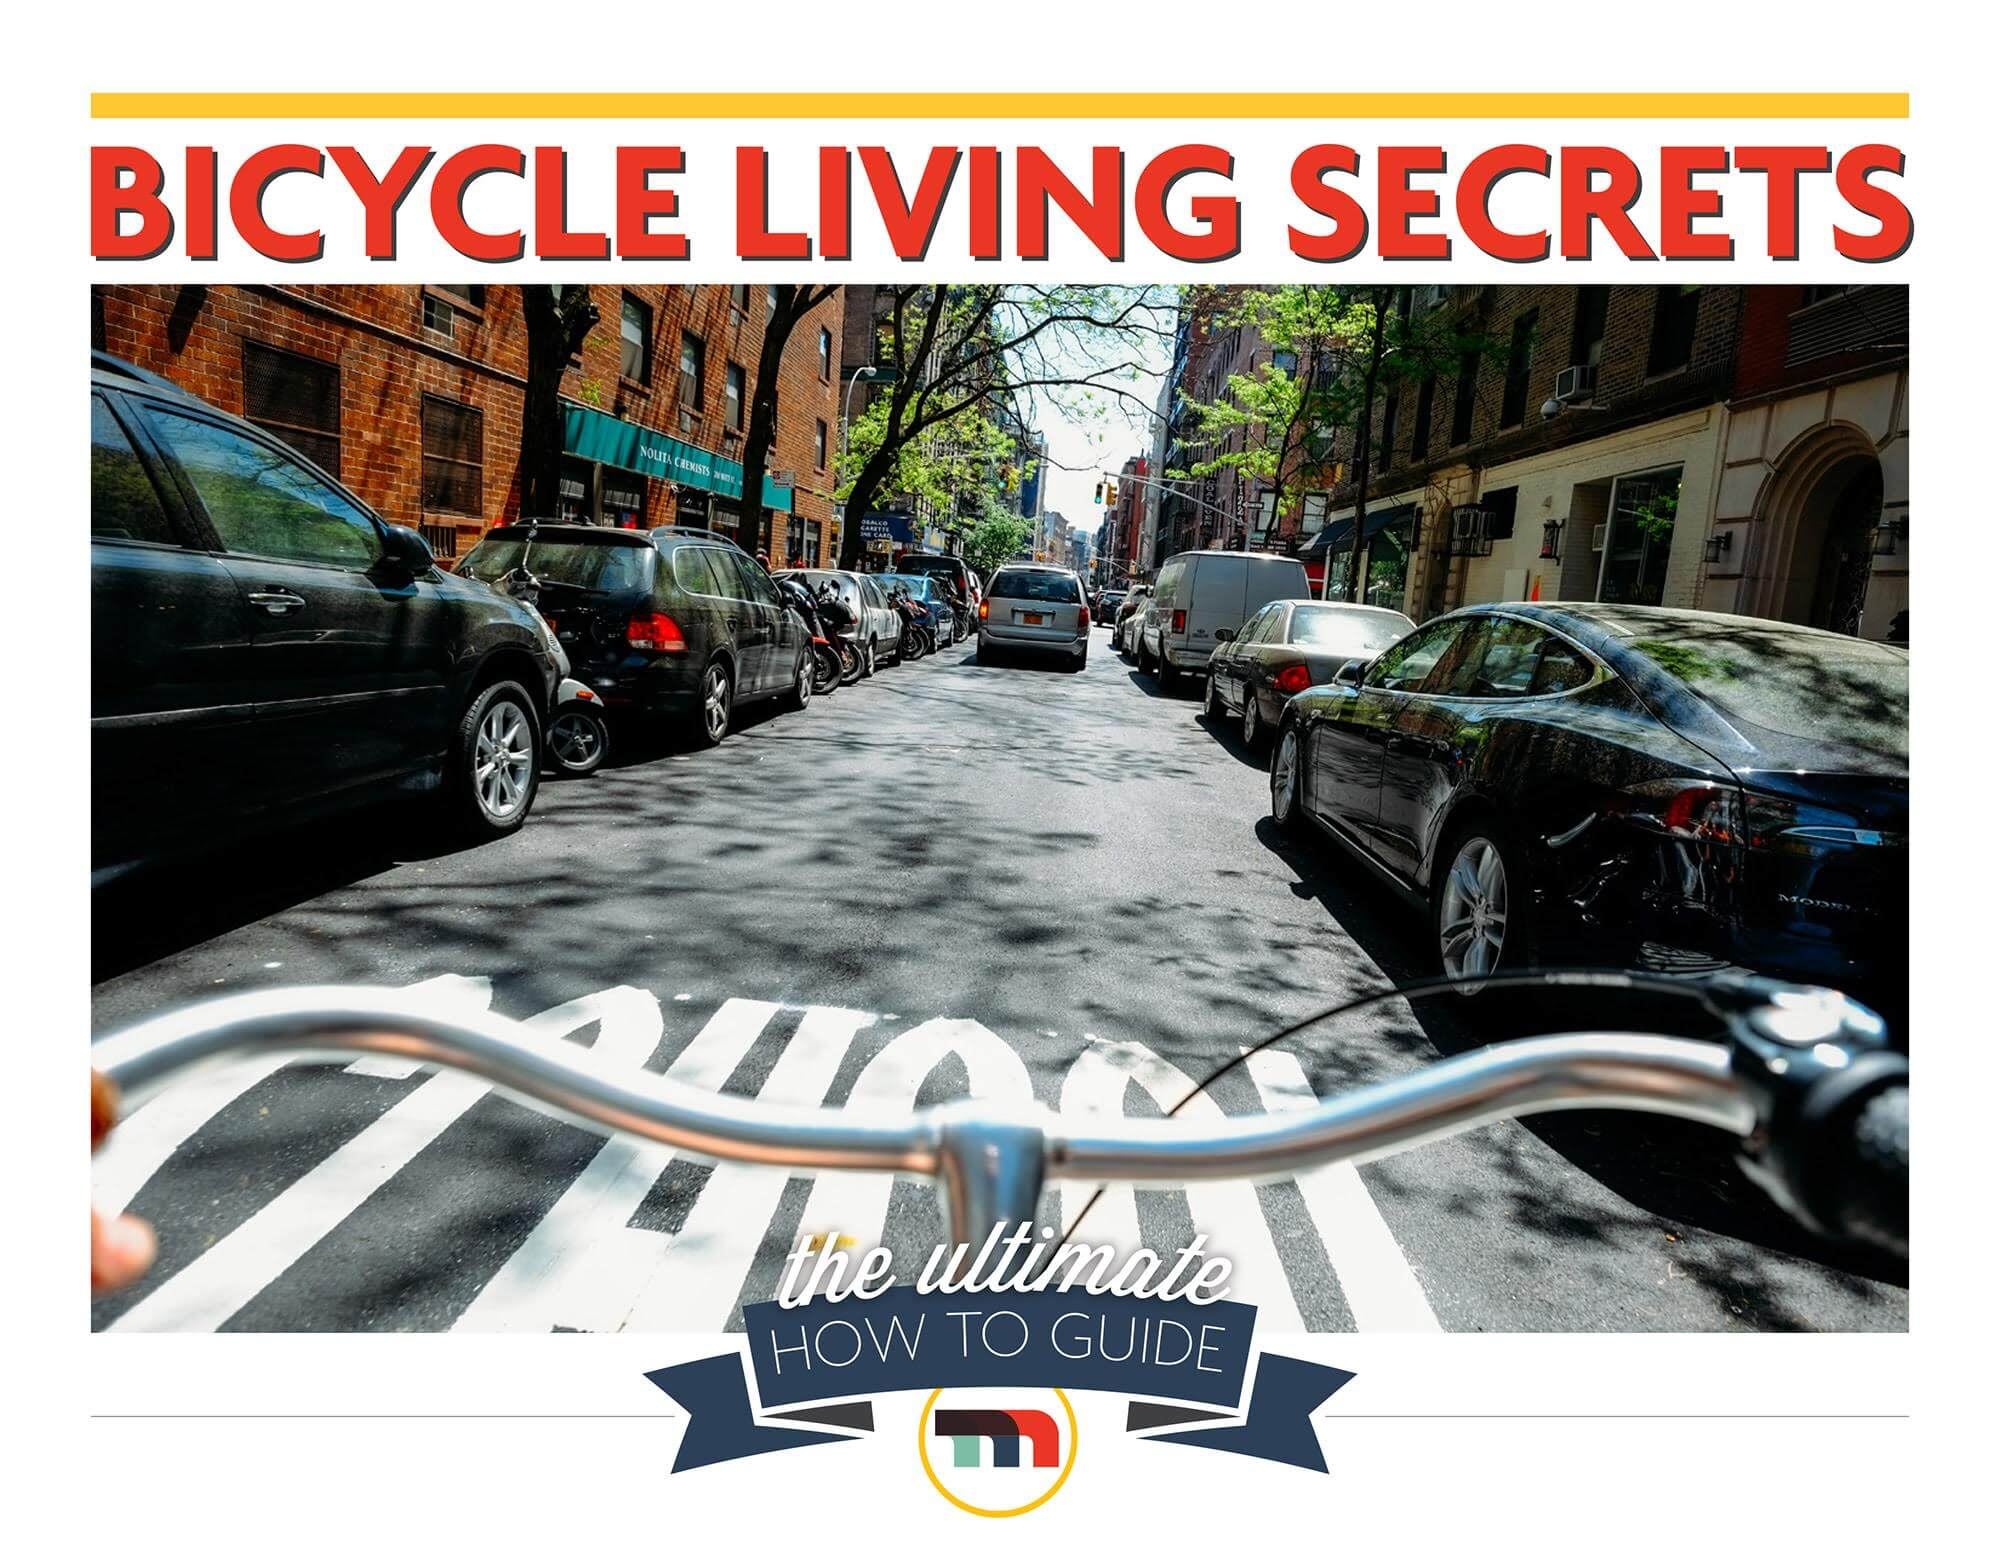 City Bicycle Secrets Guide